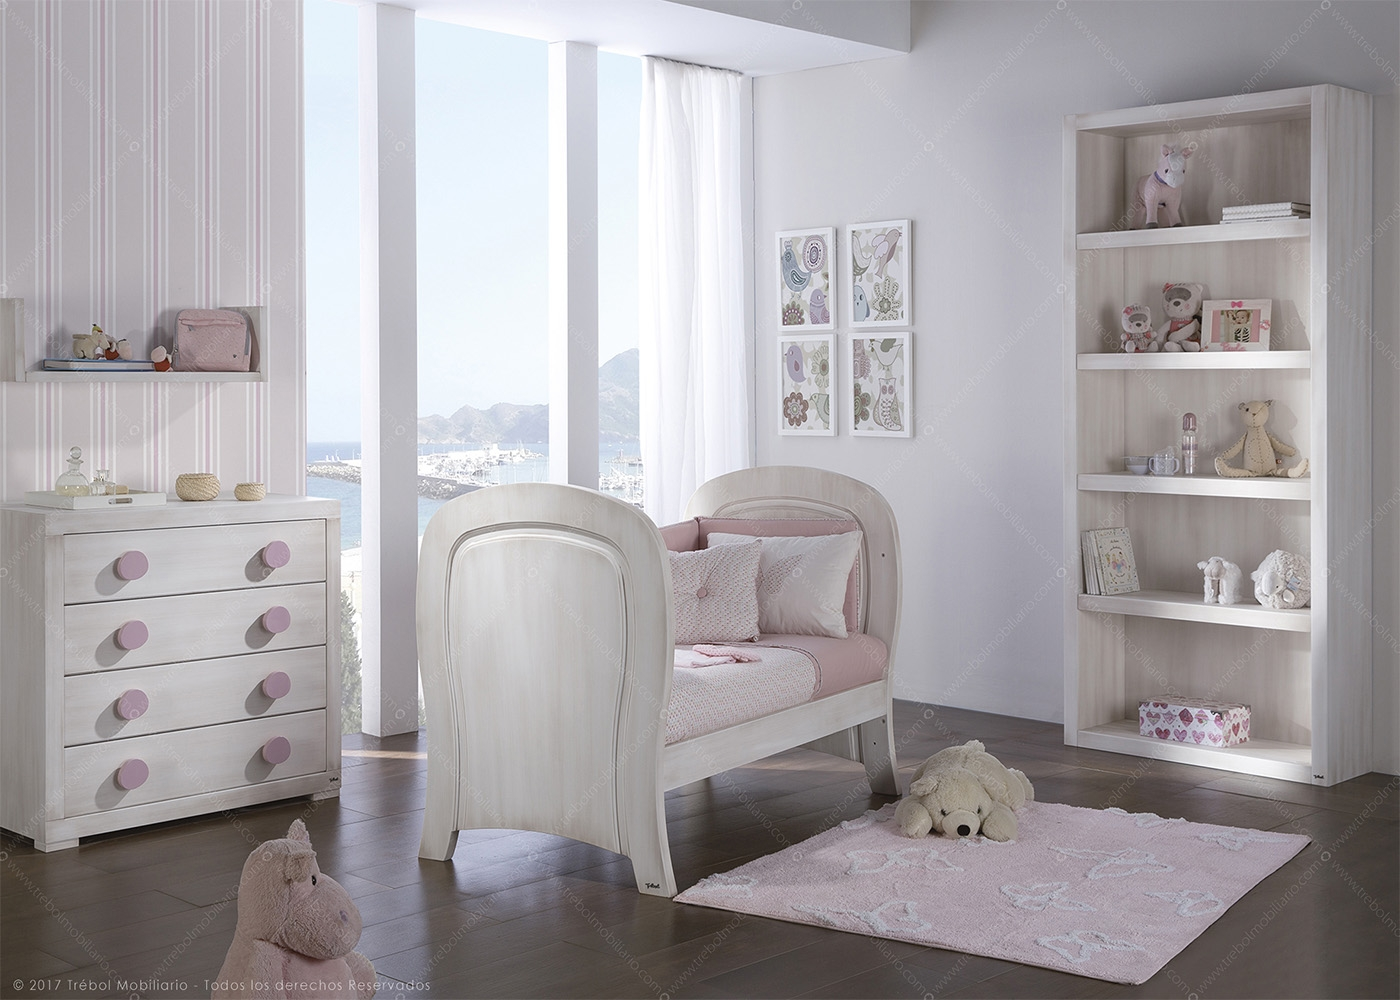 chambre pour enfant haut de gamme trebol chez ksl living. Black Bedroom Furniture Sets. Home Design Ideas